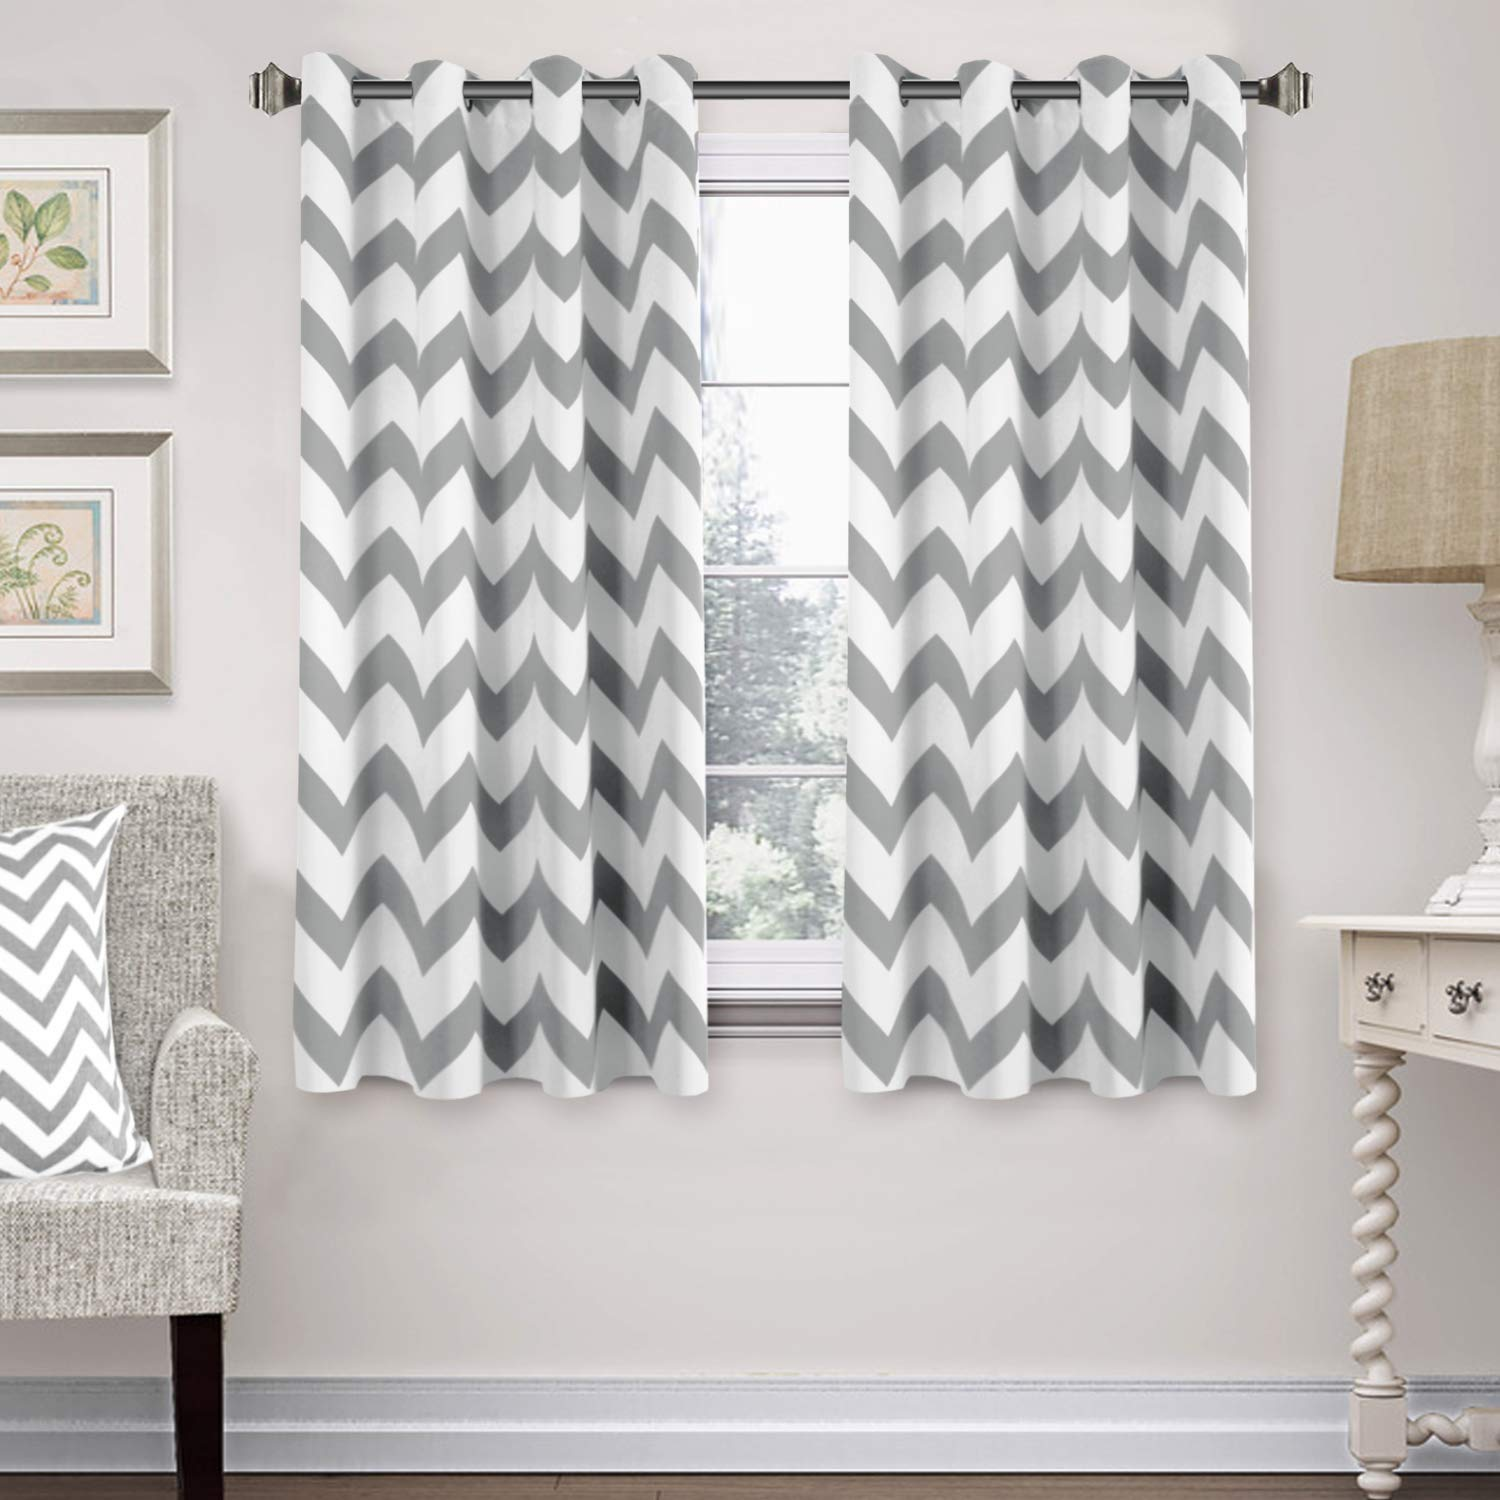 52 x 63 Taupe Chevron Curtain Panels Grommet Thermal Insulated Blackout Window Treatment Panels Pair for Bedroom//Living Room